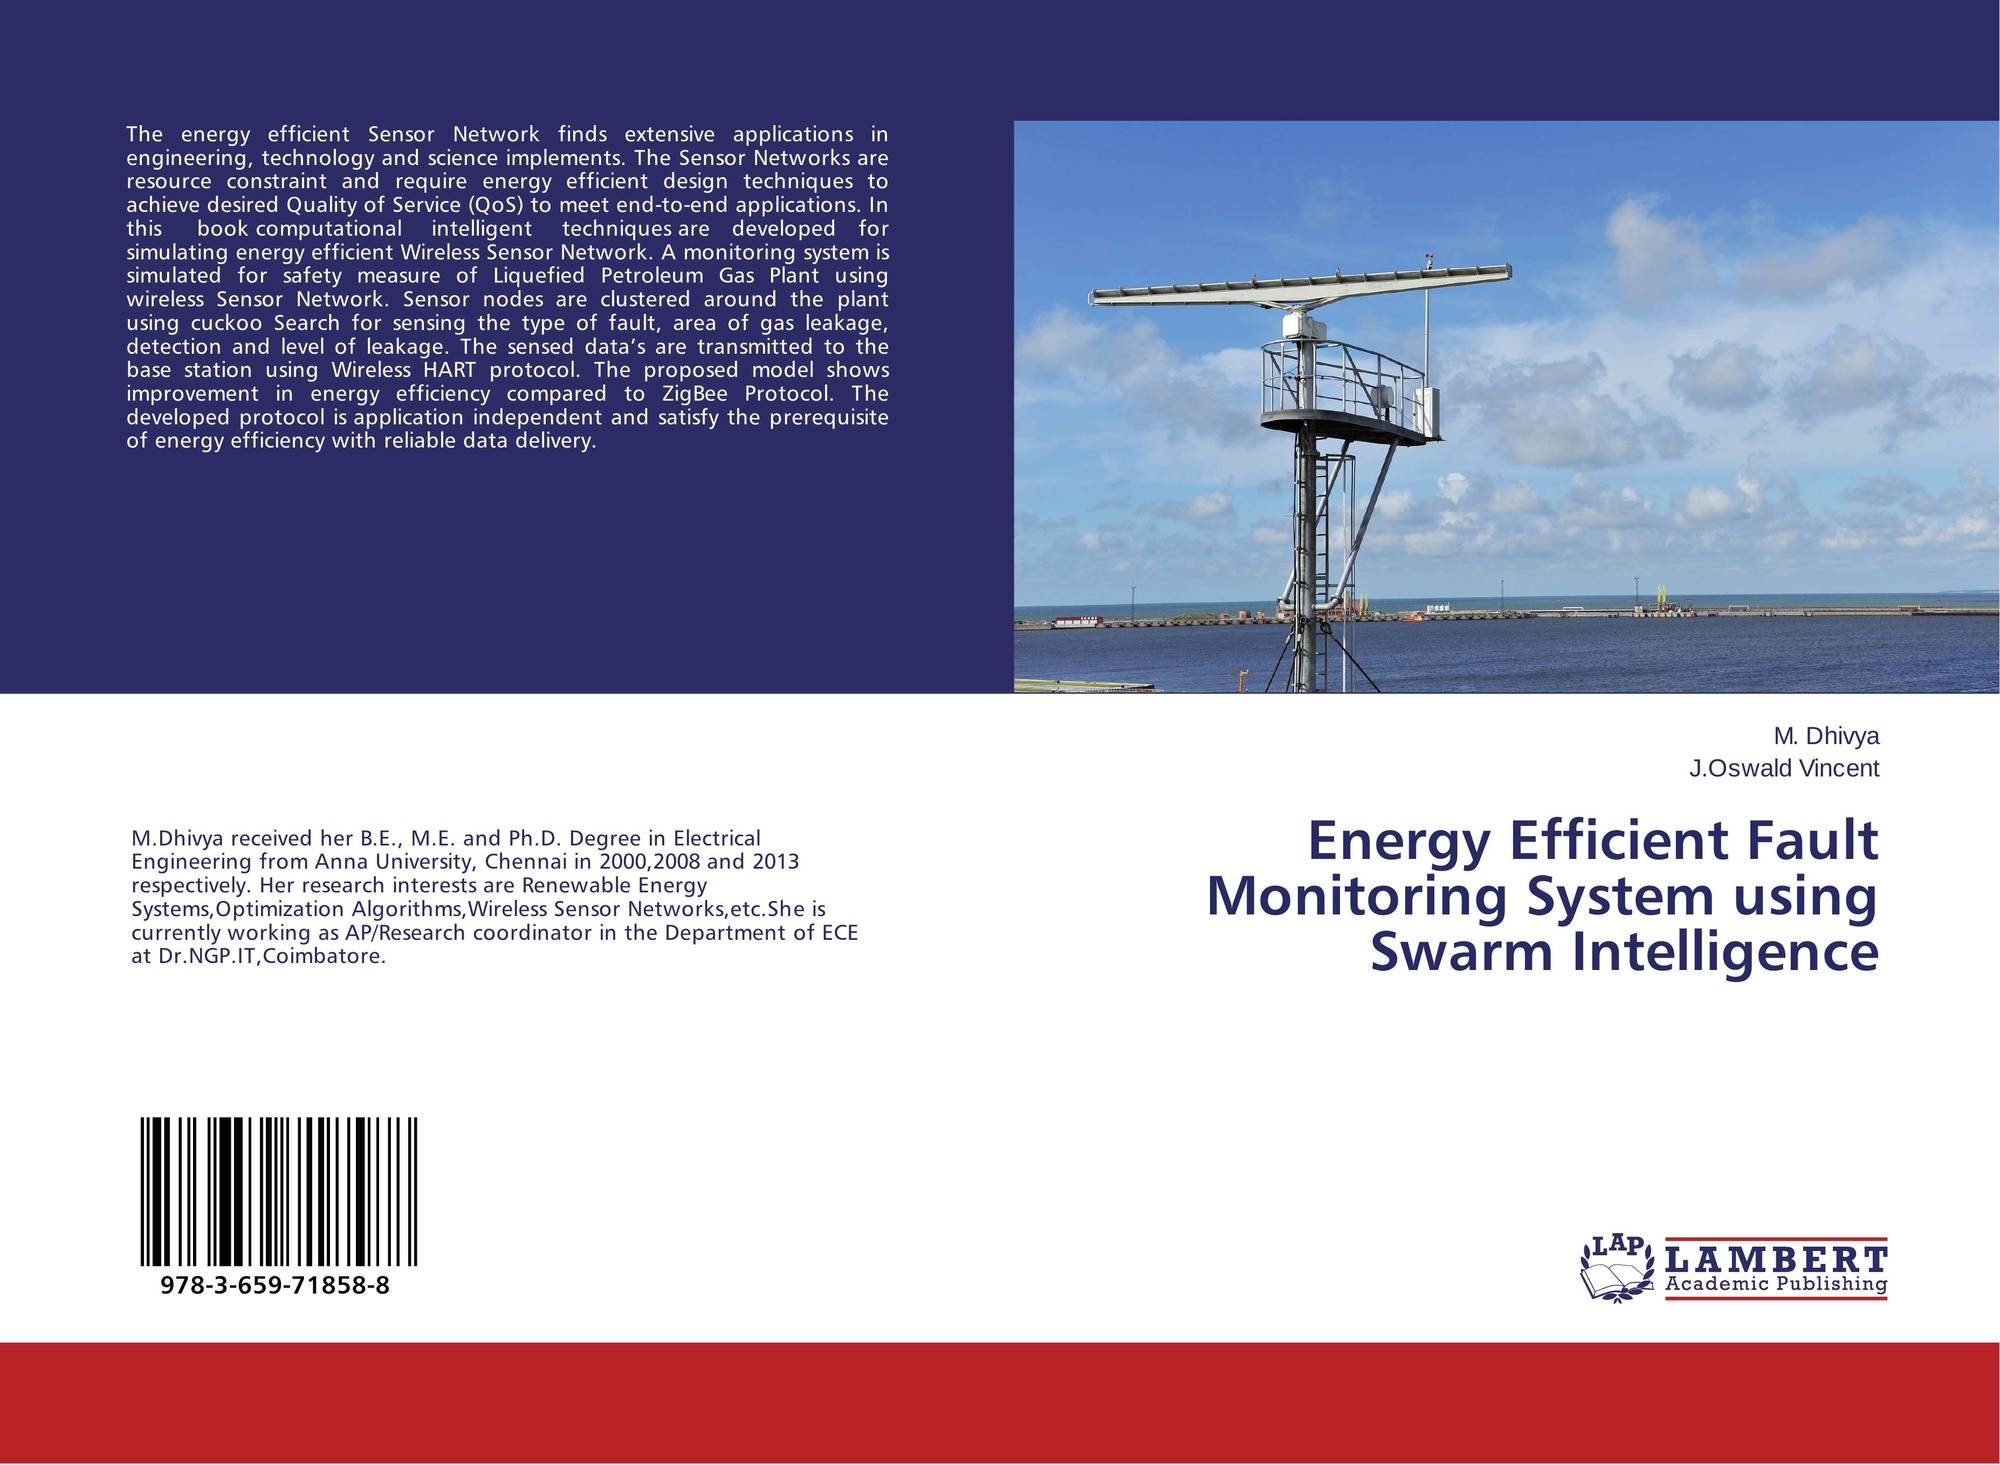 Energy Use Monitoring Systems : Energy efficient fault monitoring system using swarm